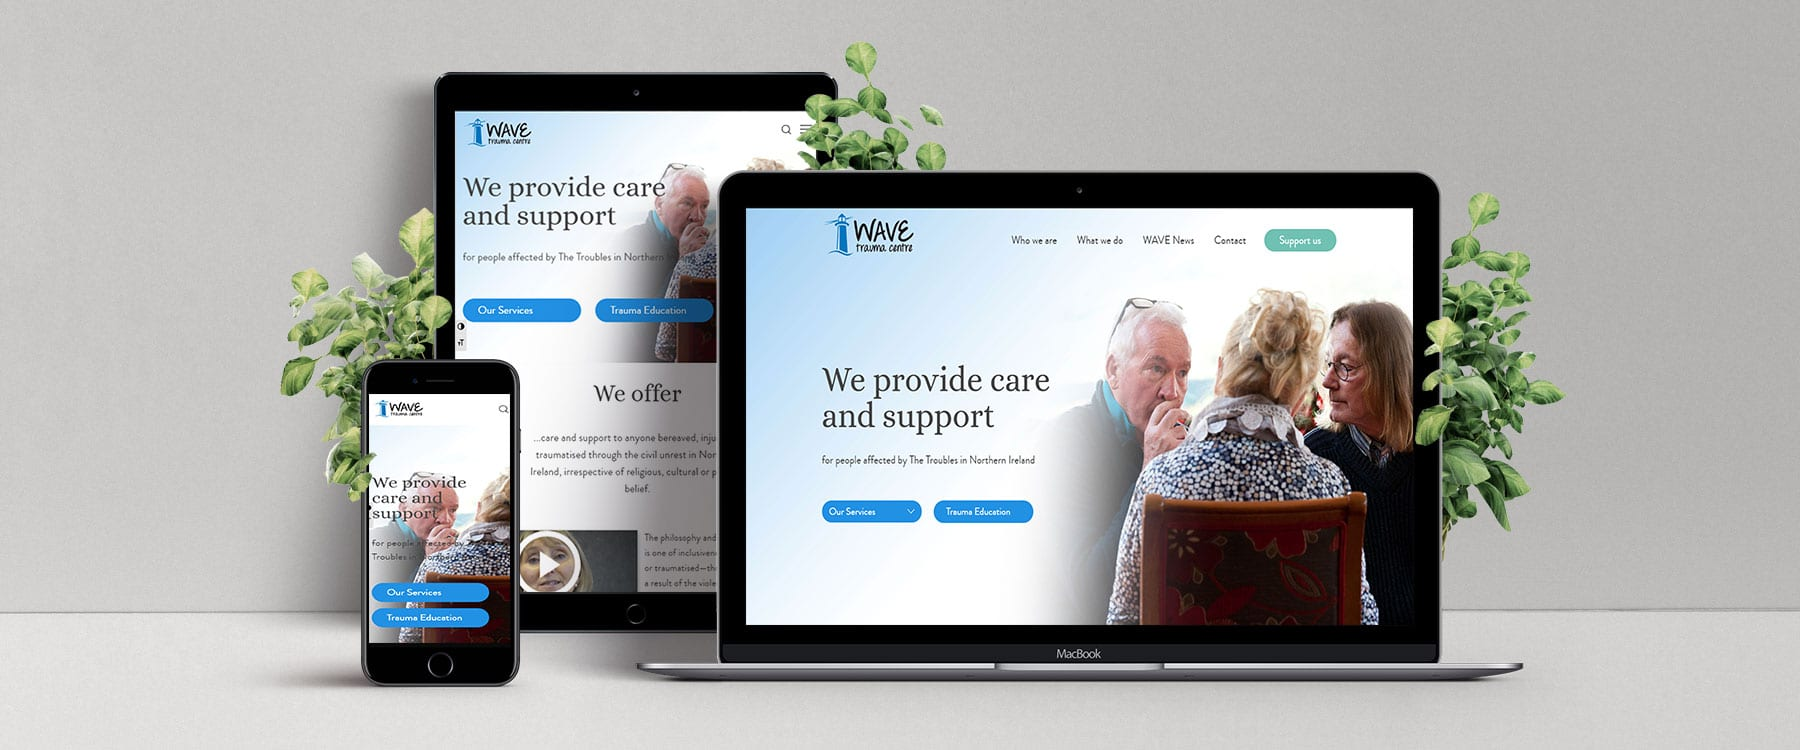 Clear and Contemporary New Website for WAVE Image